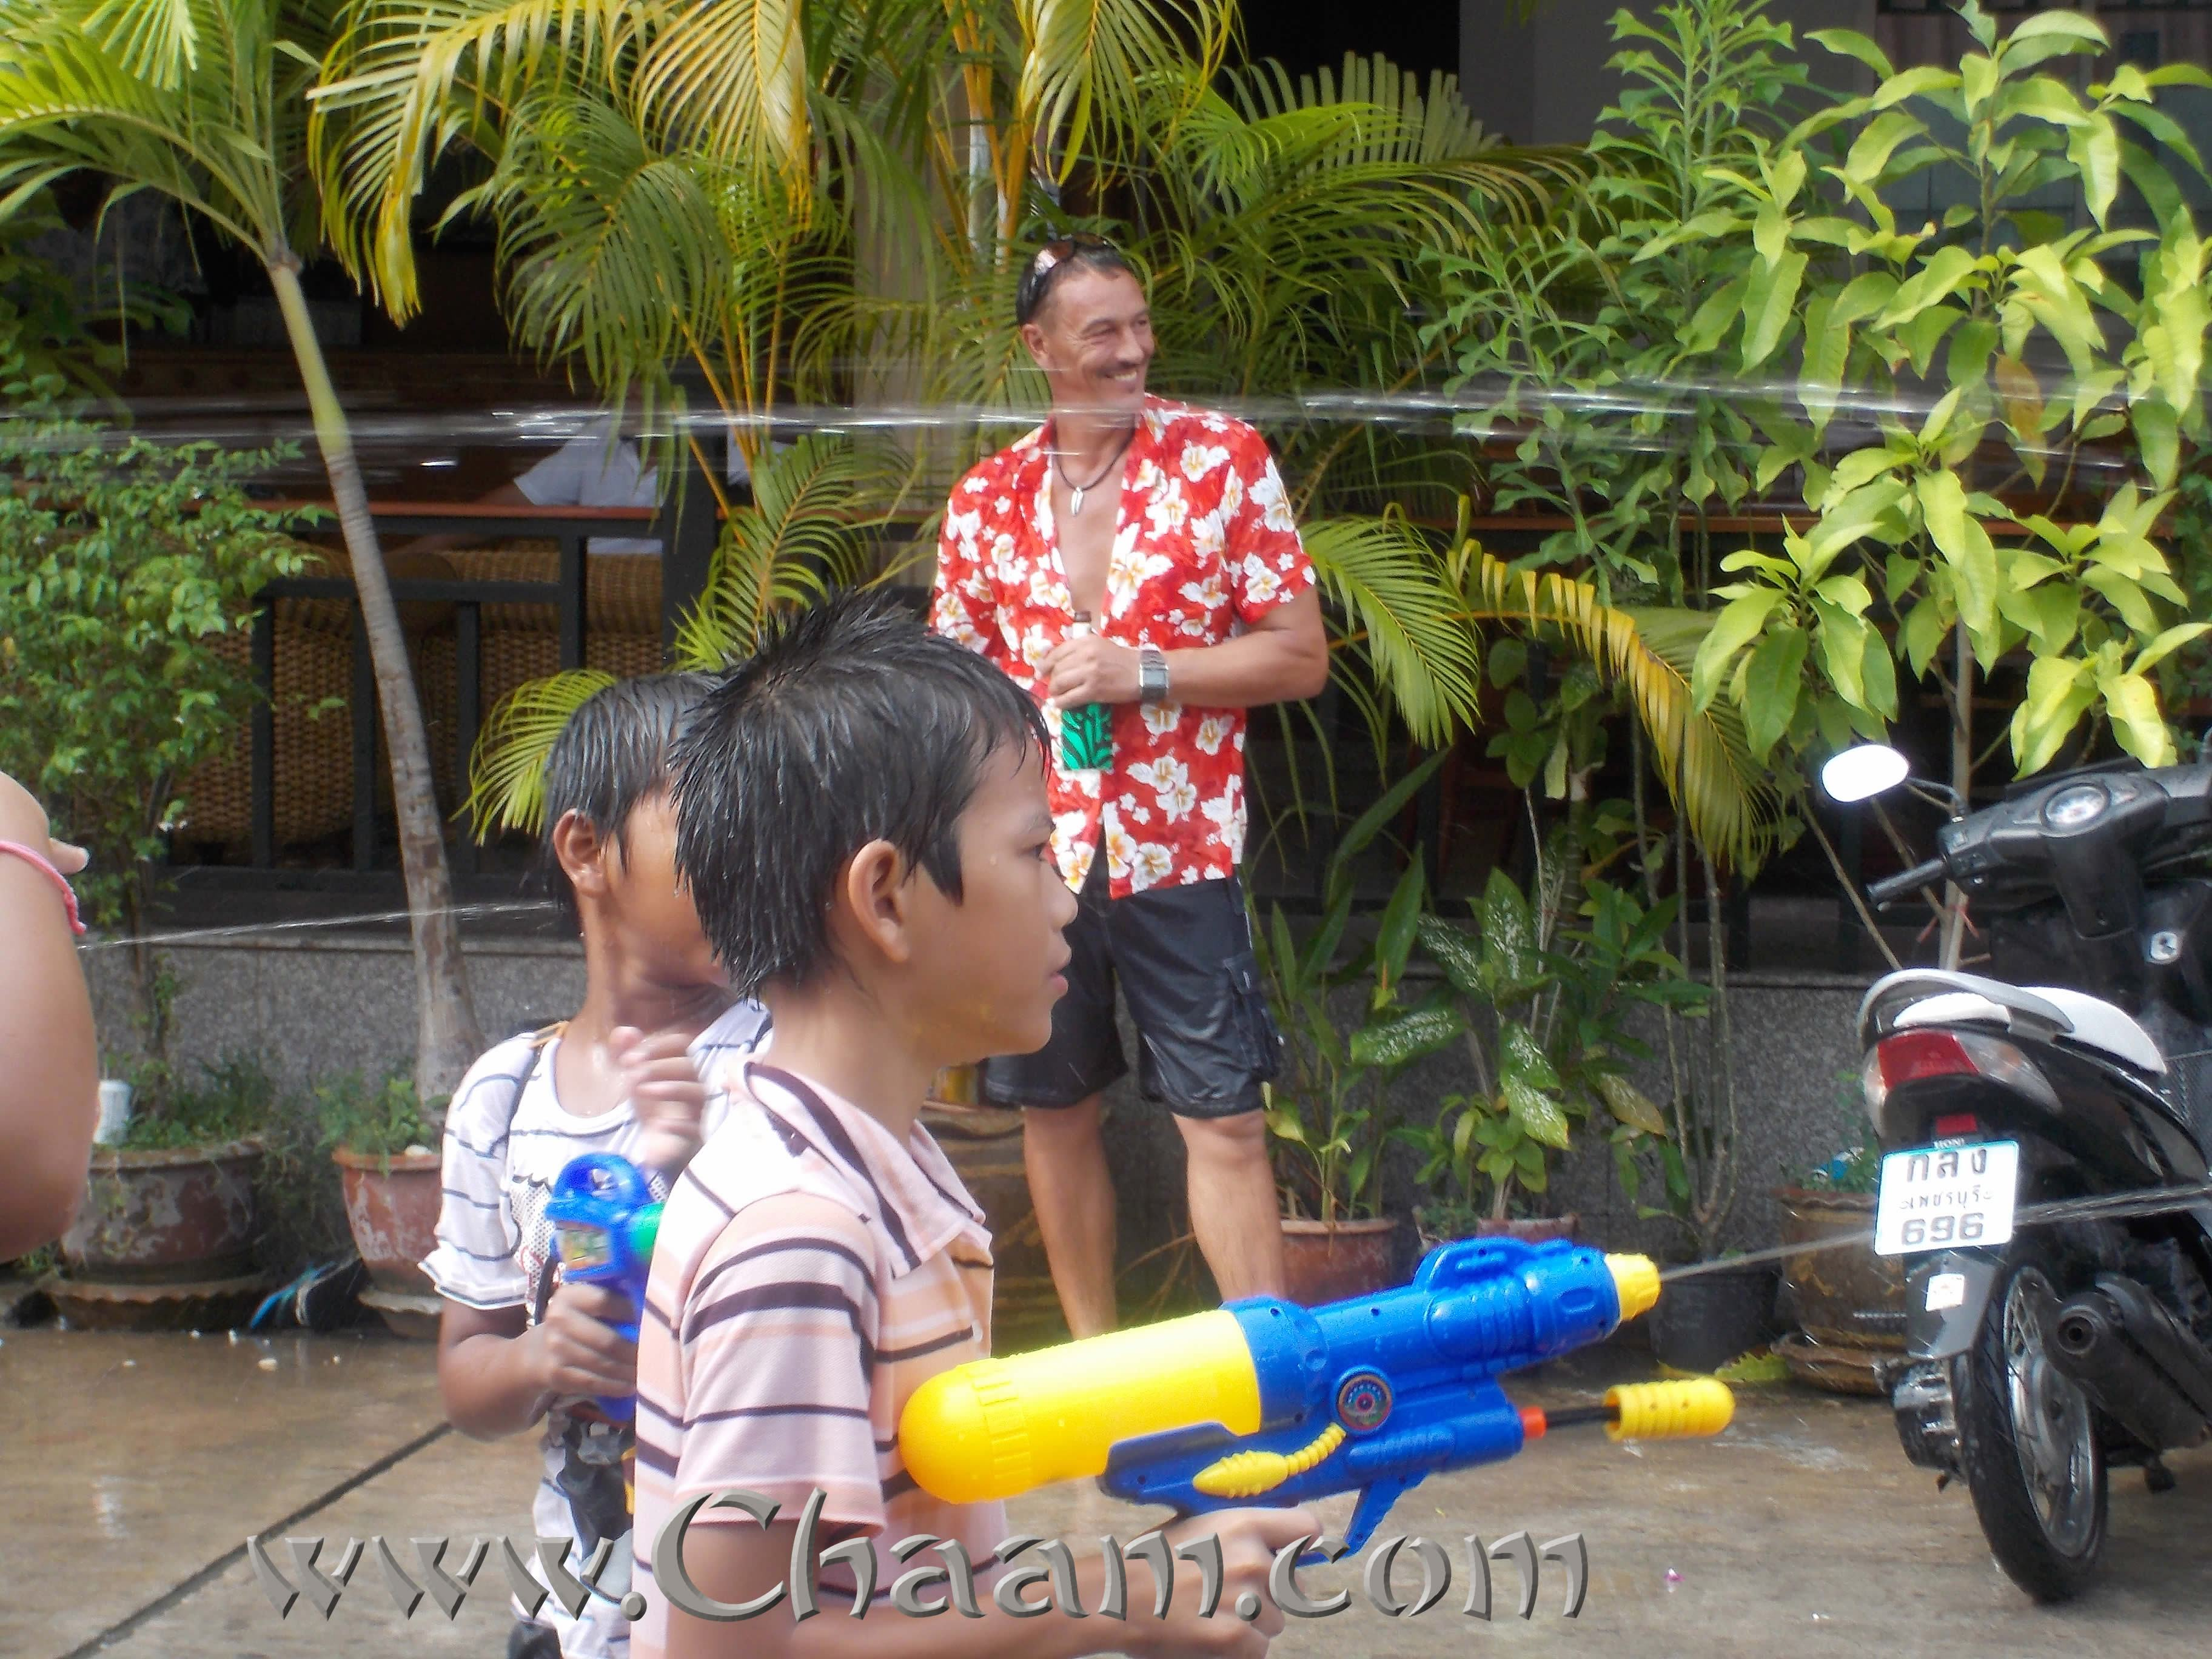 Water gun action in Cha-Am